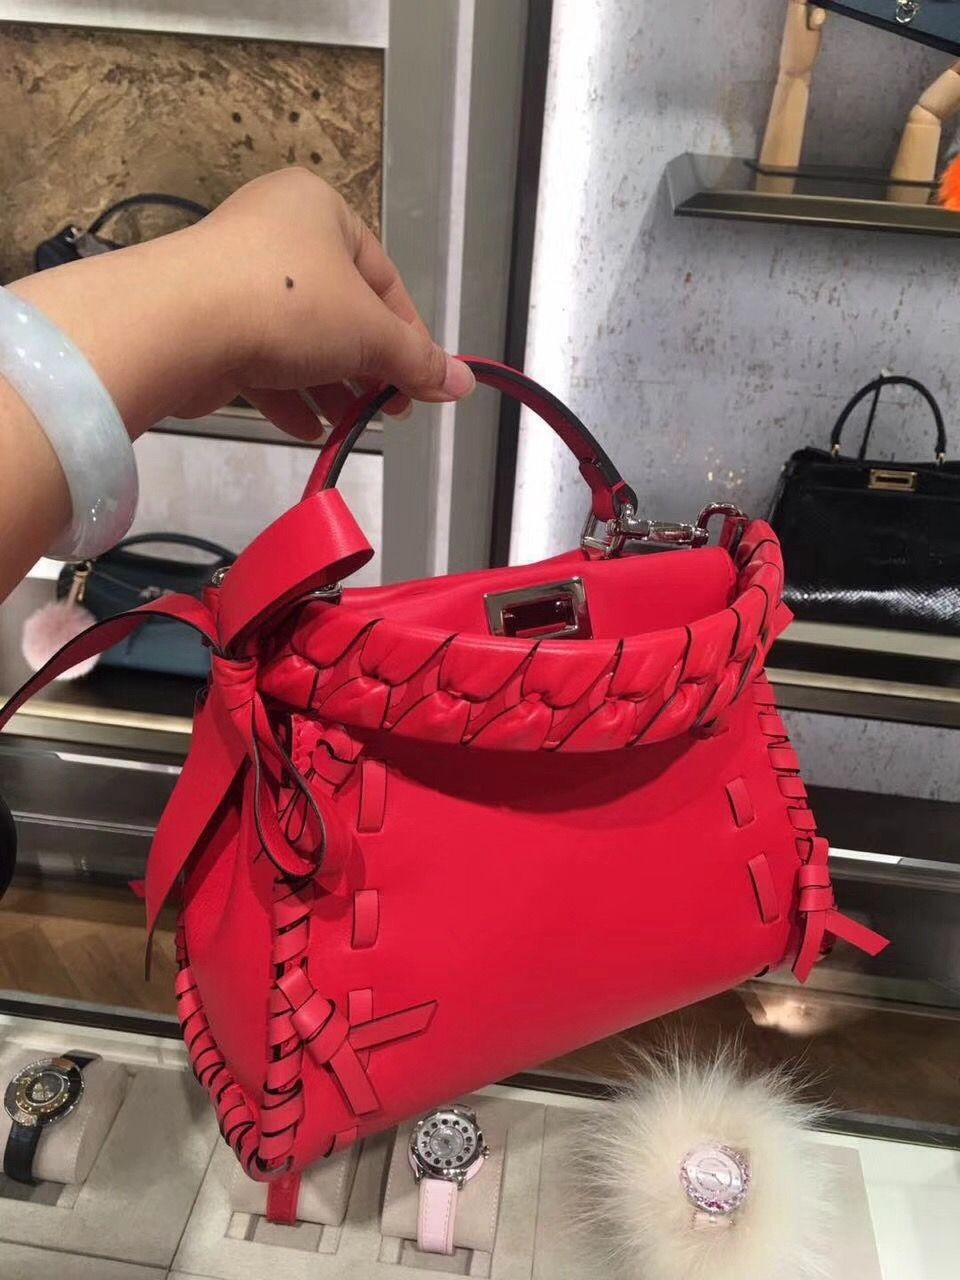 380341f827 Fendi Peekaboo Mini Bag with Leather Threading and Bows Red 2018 ...